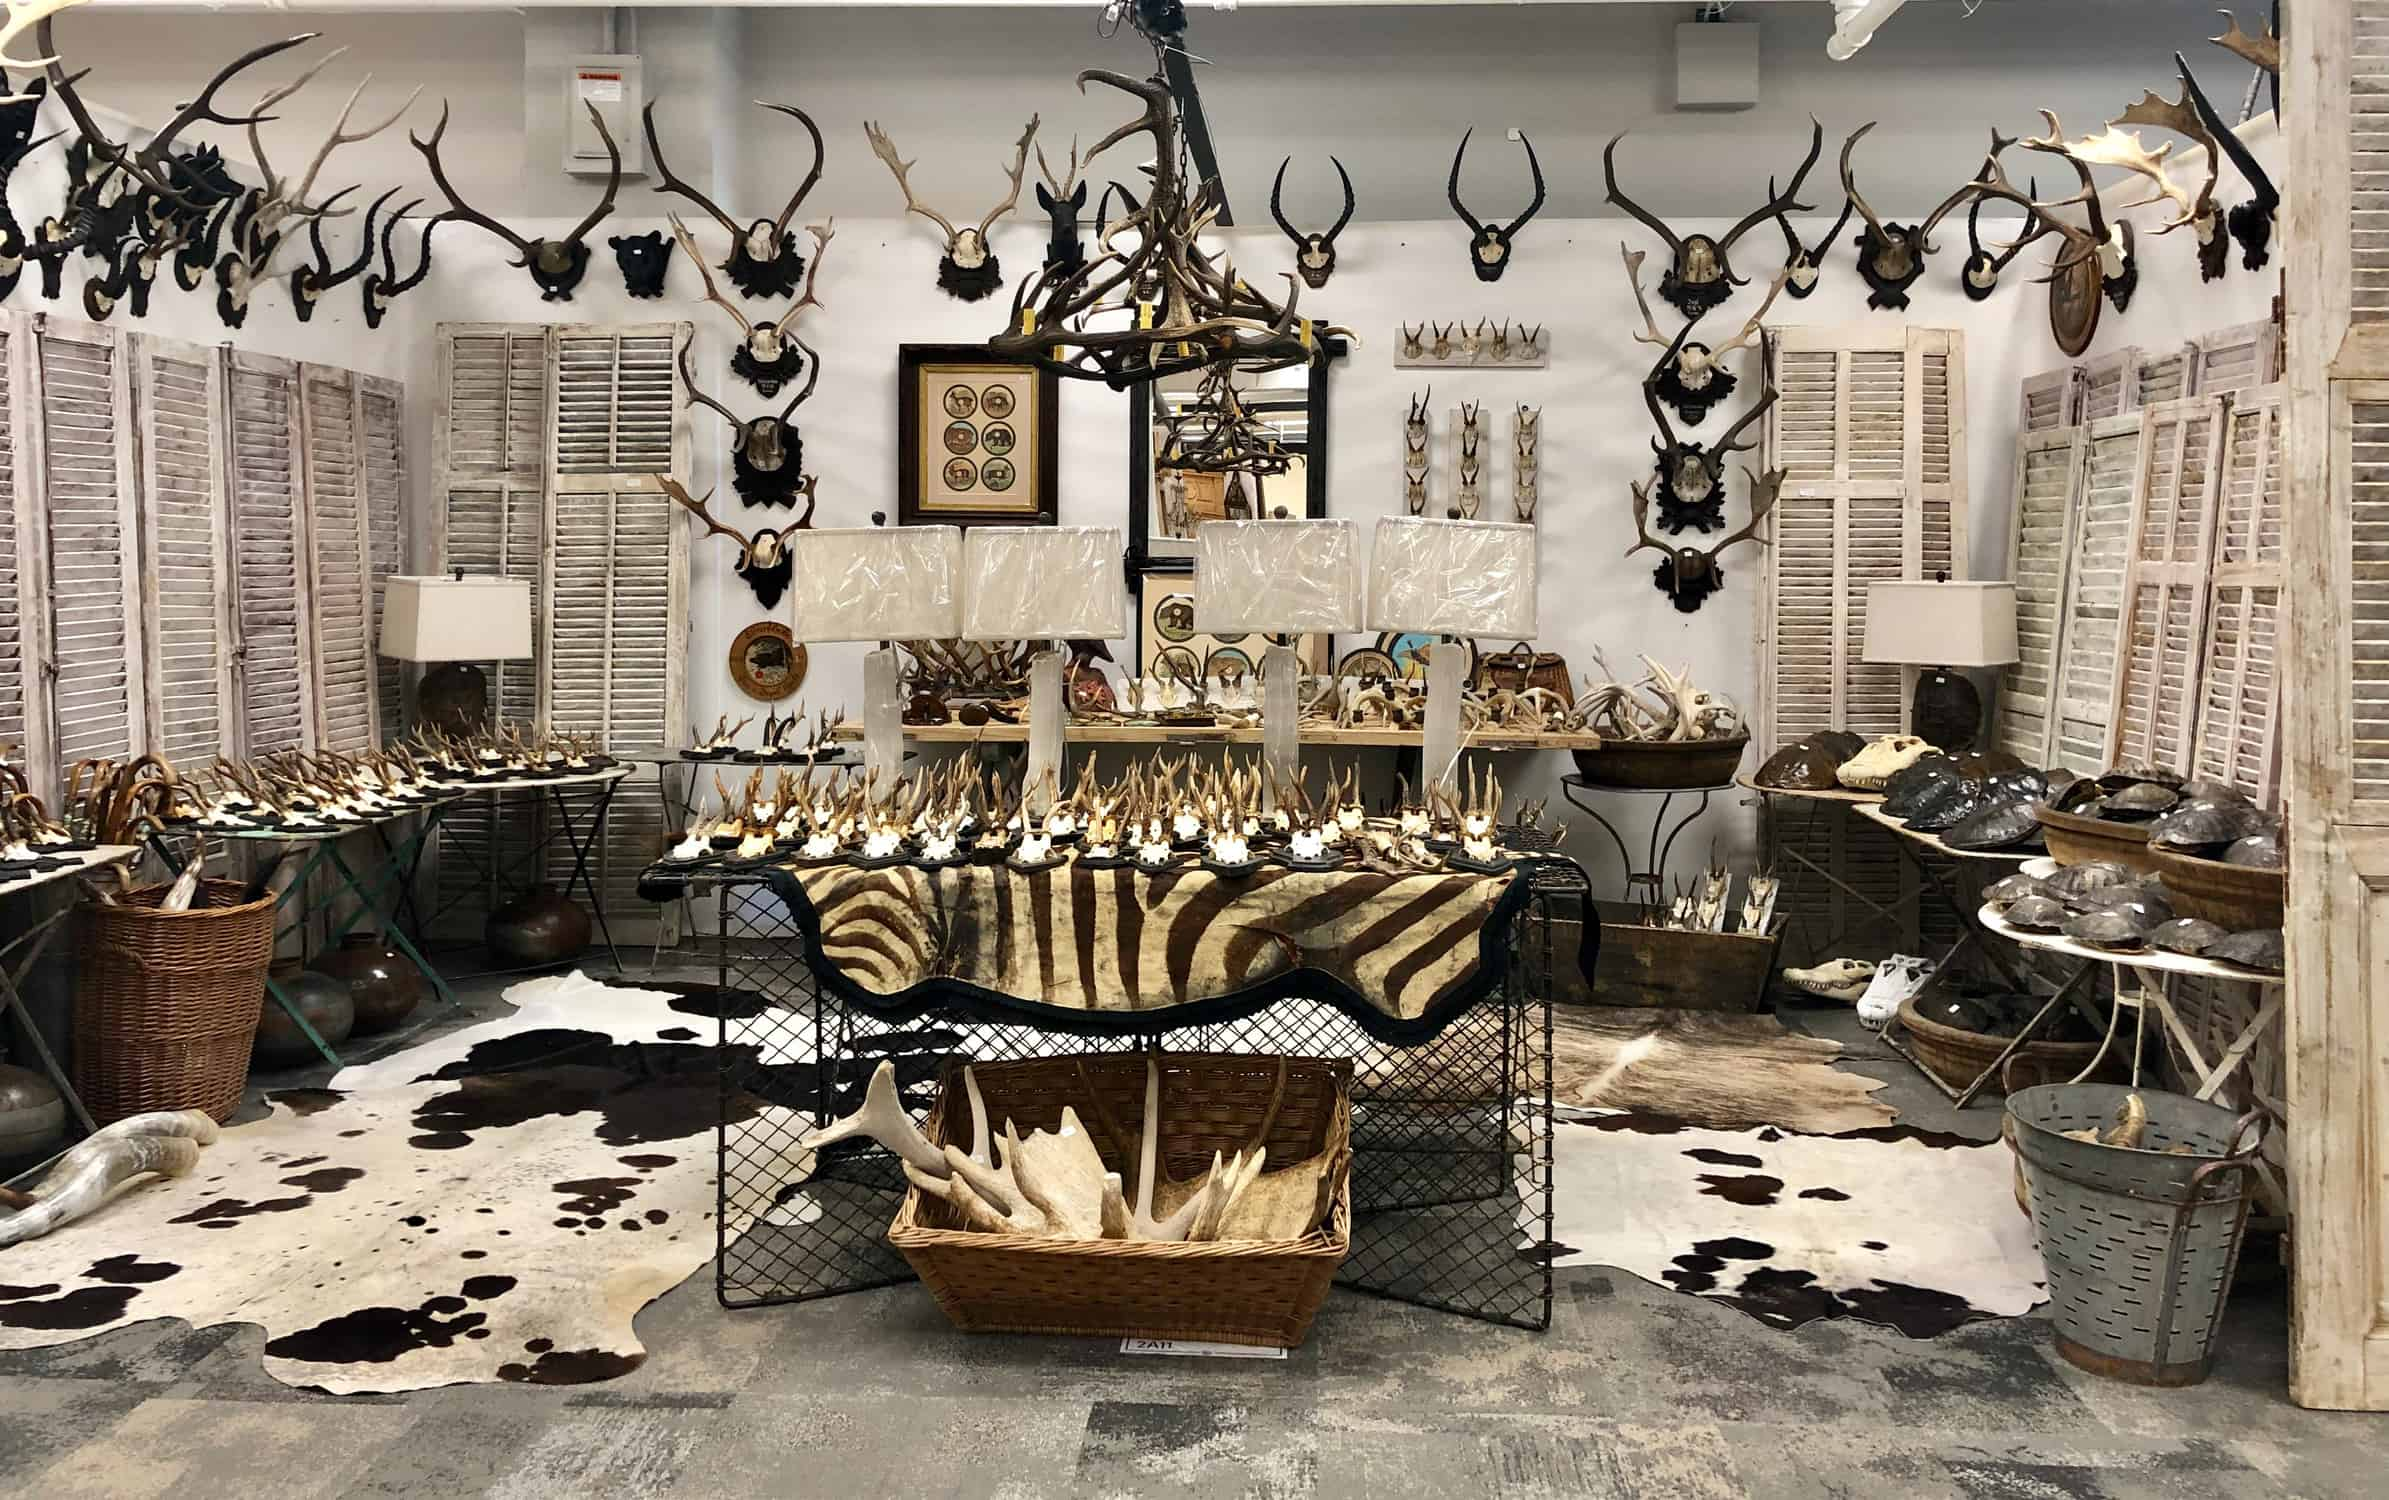 antlers and hides at Americas Mart